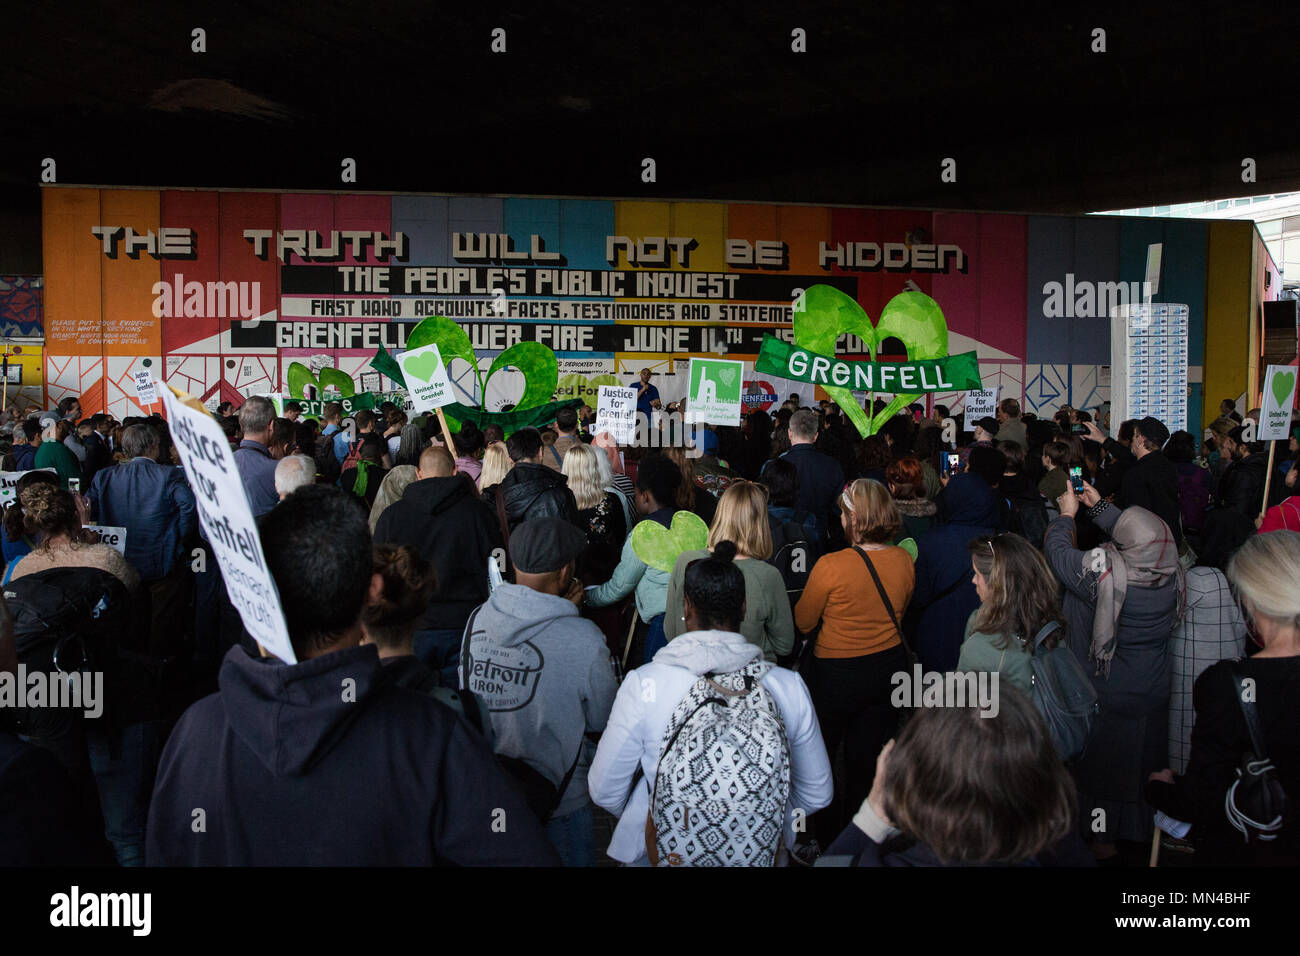 London, UK. 14th May, 2018. Members of the Grenfell community listen to speeches under the Westway flyover at Latimer Road at the end of the Grenfell Silent March. The march, which takes place on the monthly anniversary of the fire on 14th June 2017, has now returned to the original route starting at the Notting Hill Methodist Church. 71 people died in the Grenfell Tower fire and over 70 were injured. Credit: Mark Kerrison/Alamy Live News Stock Photo